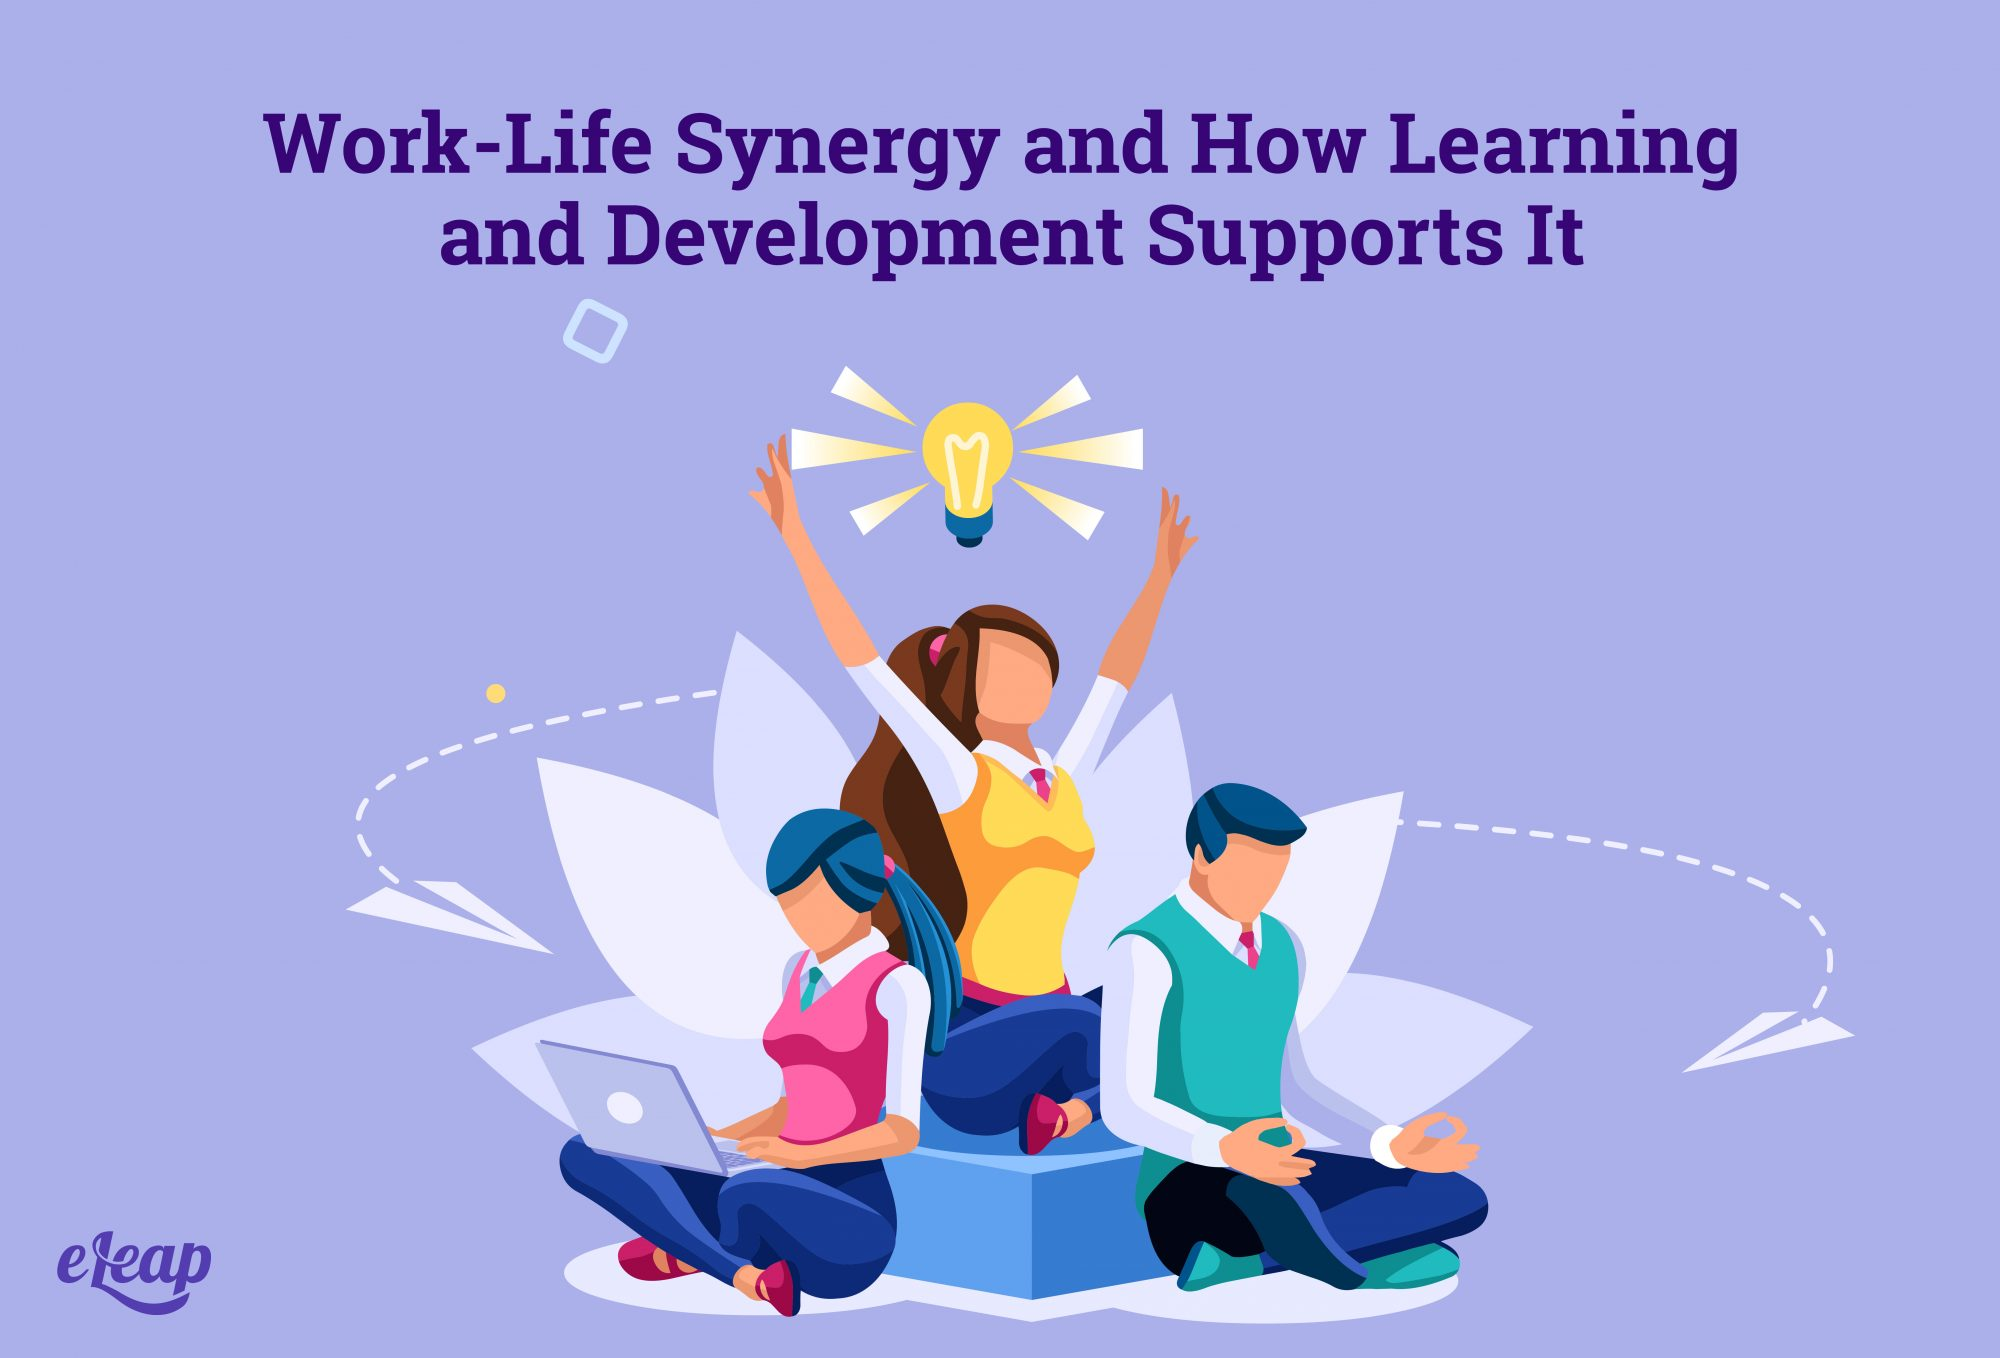 Work-Life Synergy and How Learning and Development Supports It